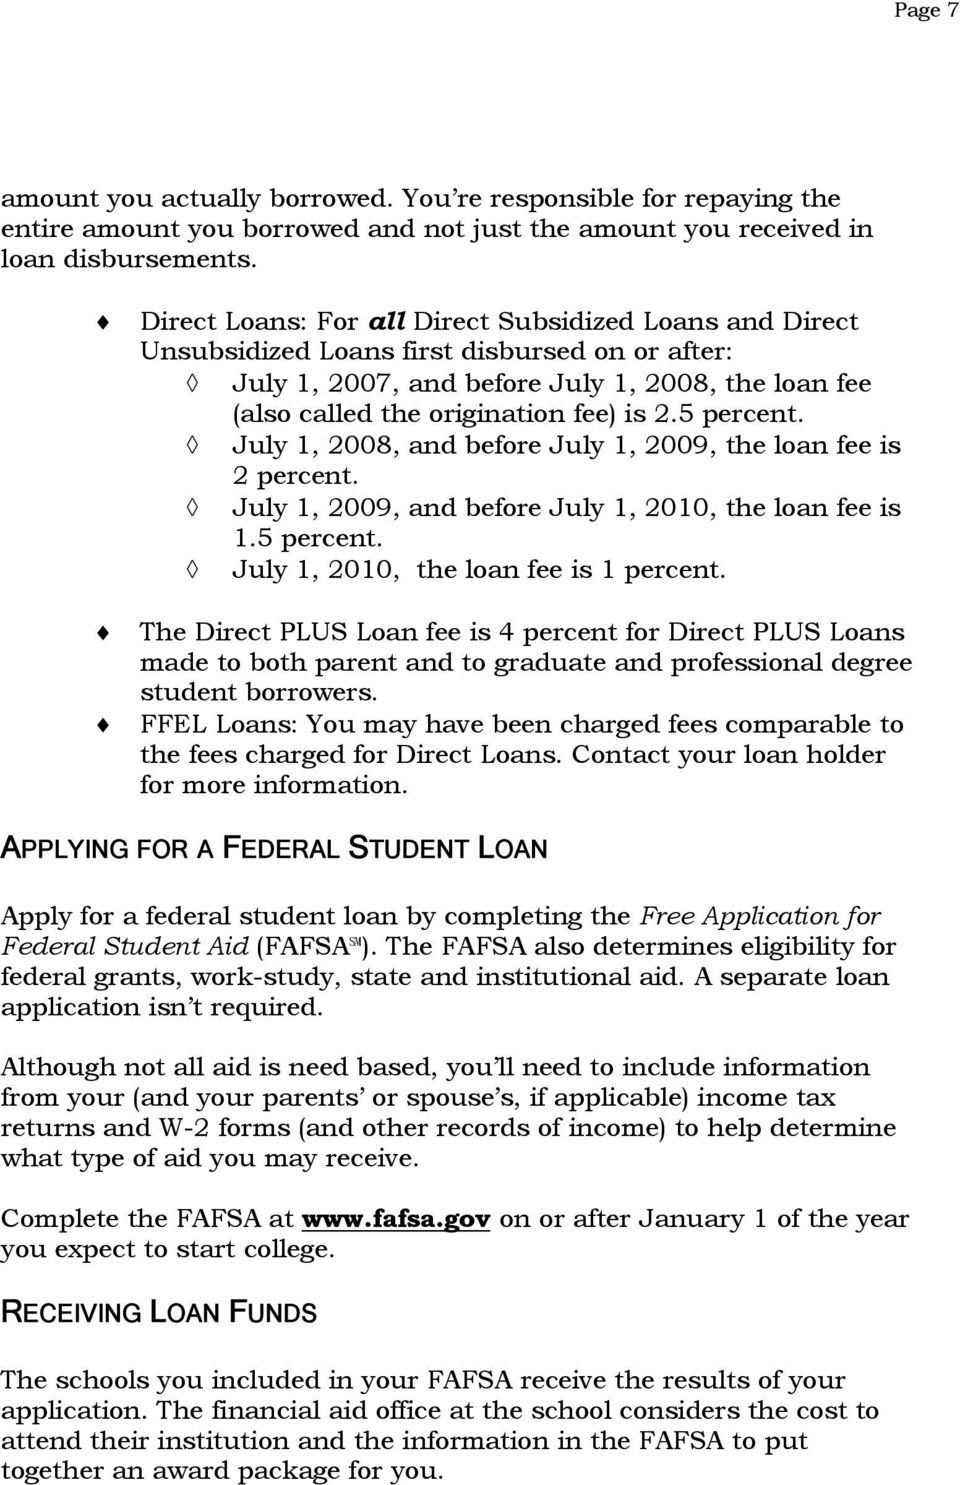 5 percent. July 1, 2008, and before July 1, 2009, the loan fee is 2 percent. July 1, 2009, and before July 1, 2010, the loan fee is 1.5 percent. July 1, 2010, the loan fee is 1 percent.